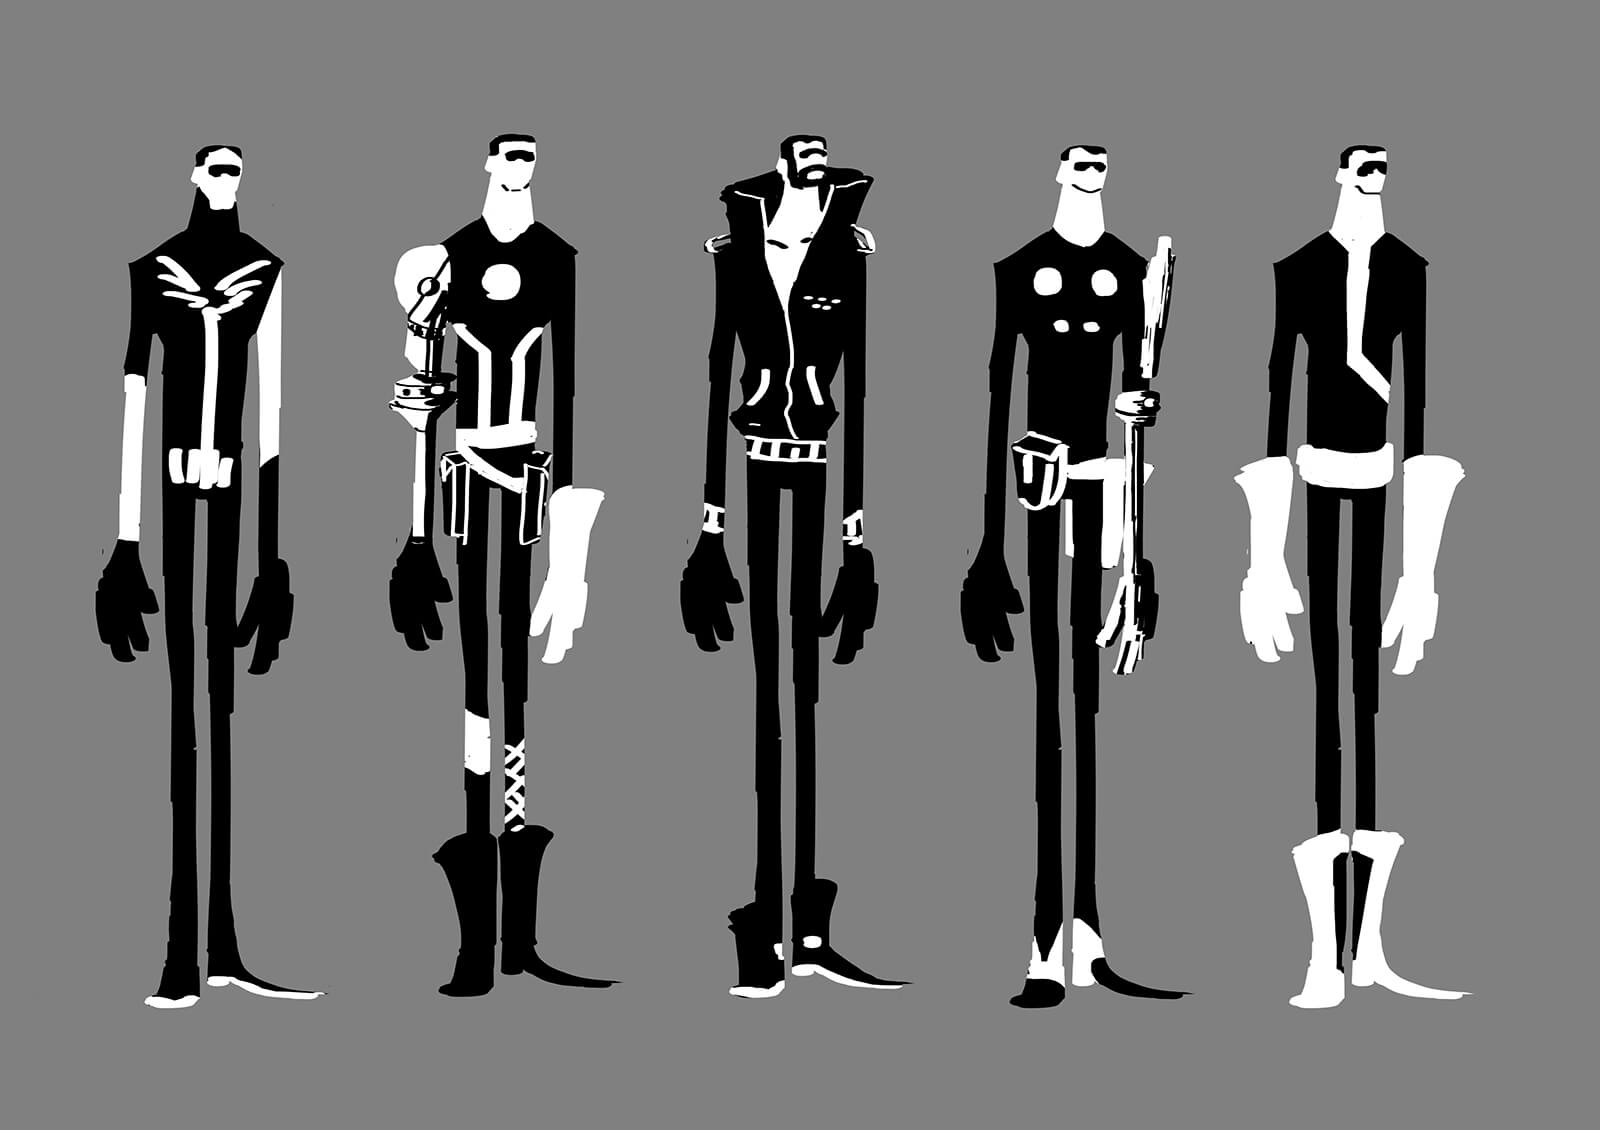 Black-and-white concept sketches or a tall, thin man in various futuristic outfits standing side to side